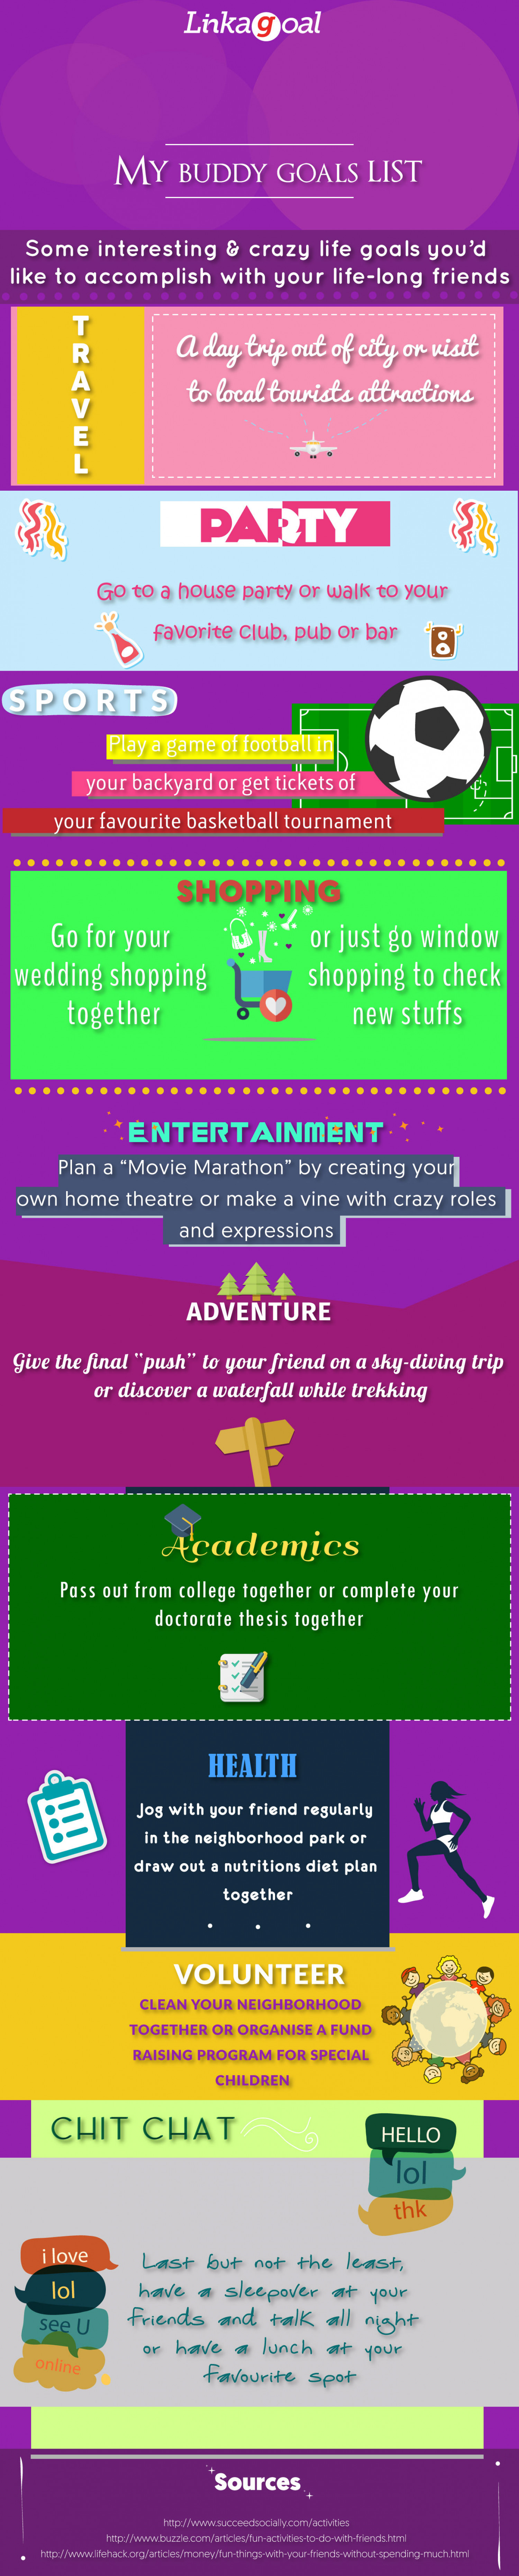 Interesting and Crazy Life Goals! Infographic